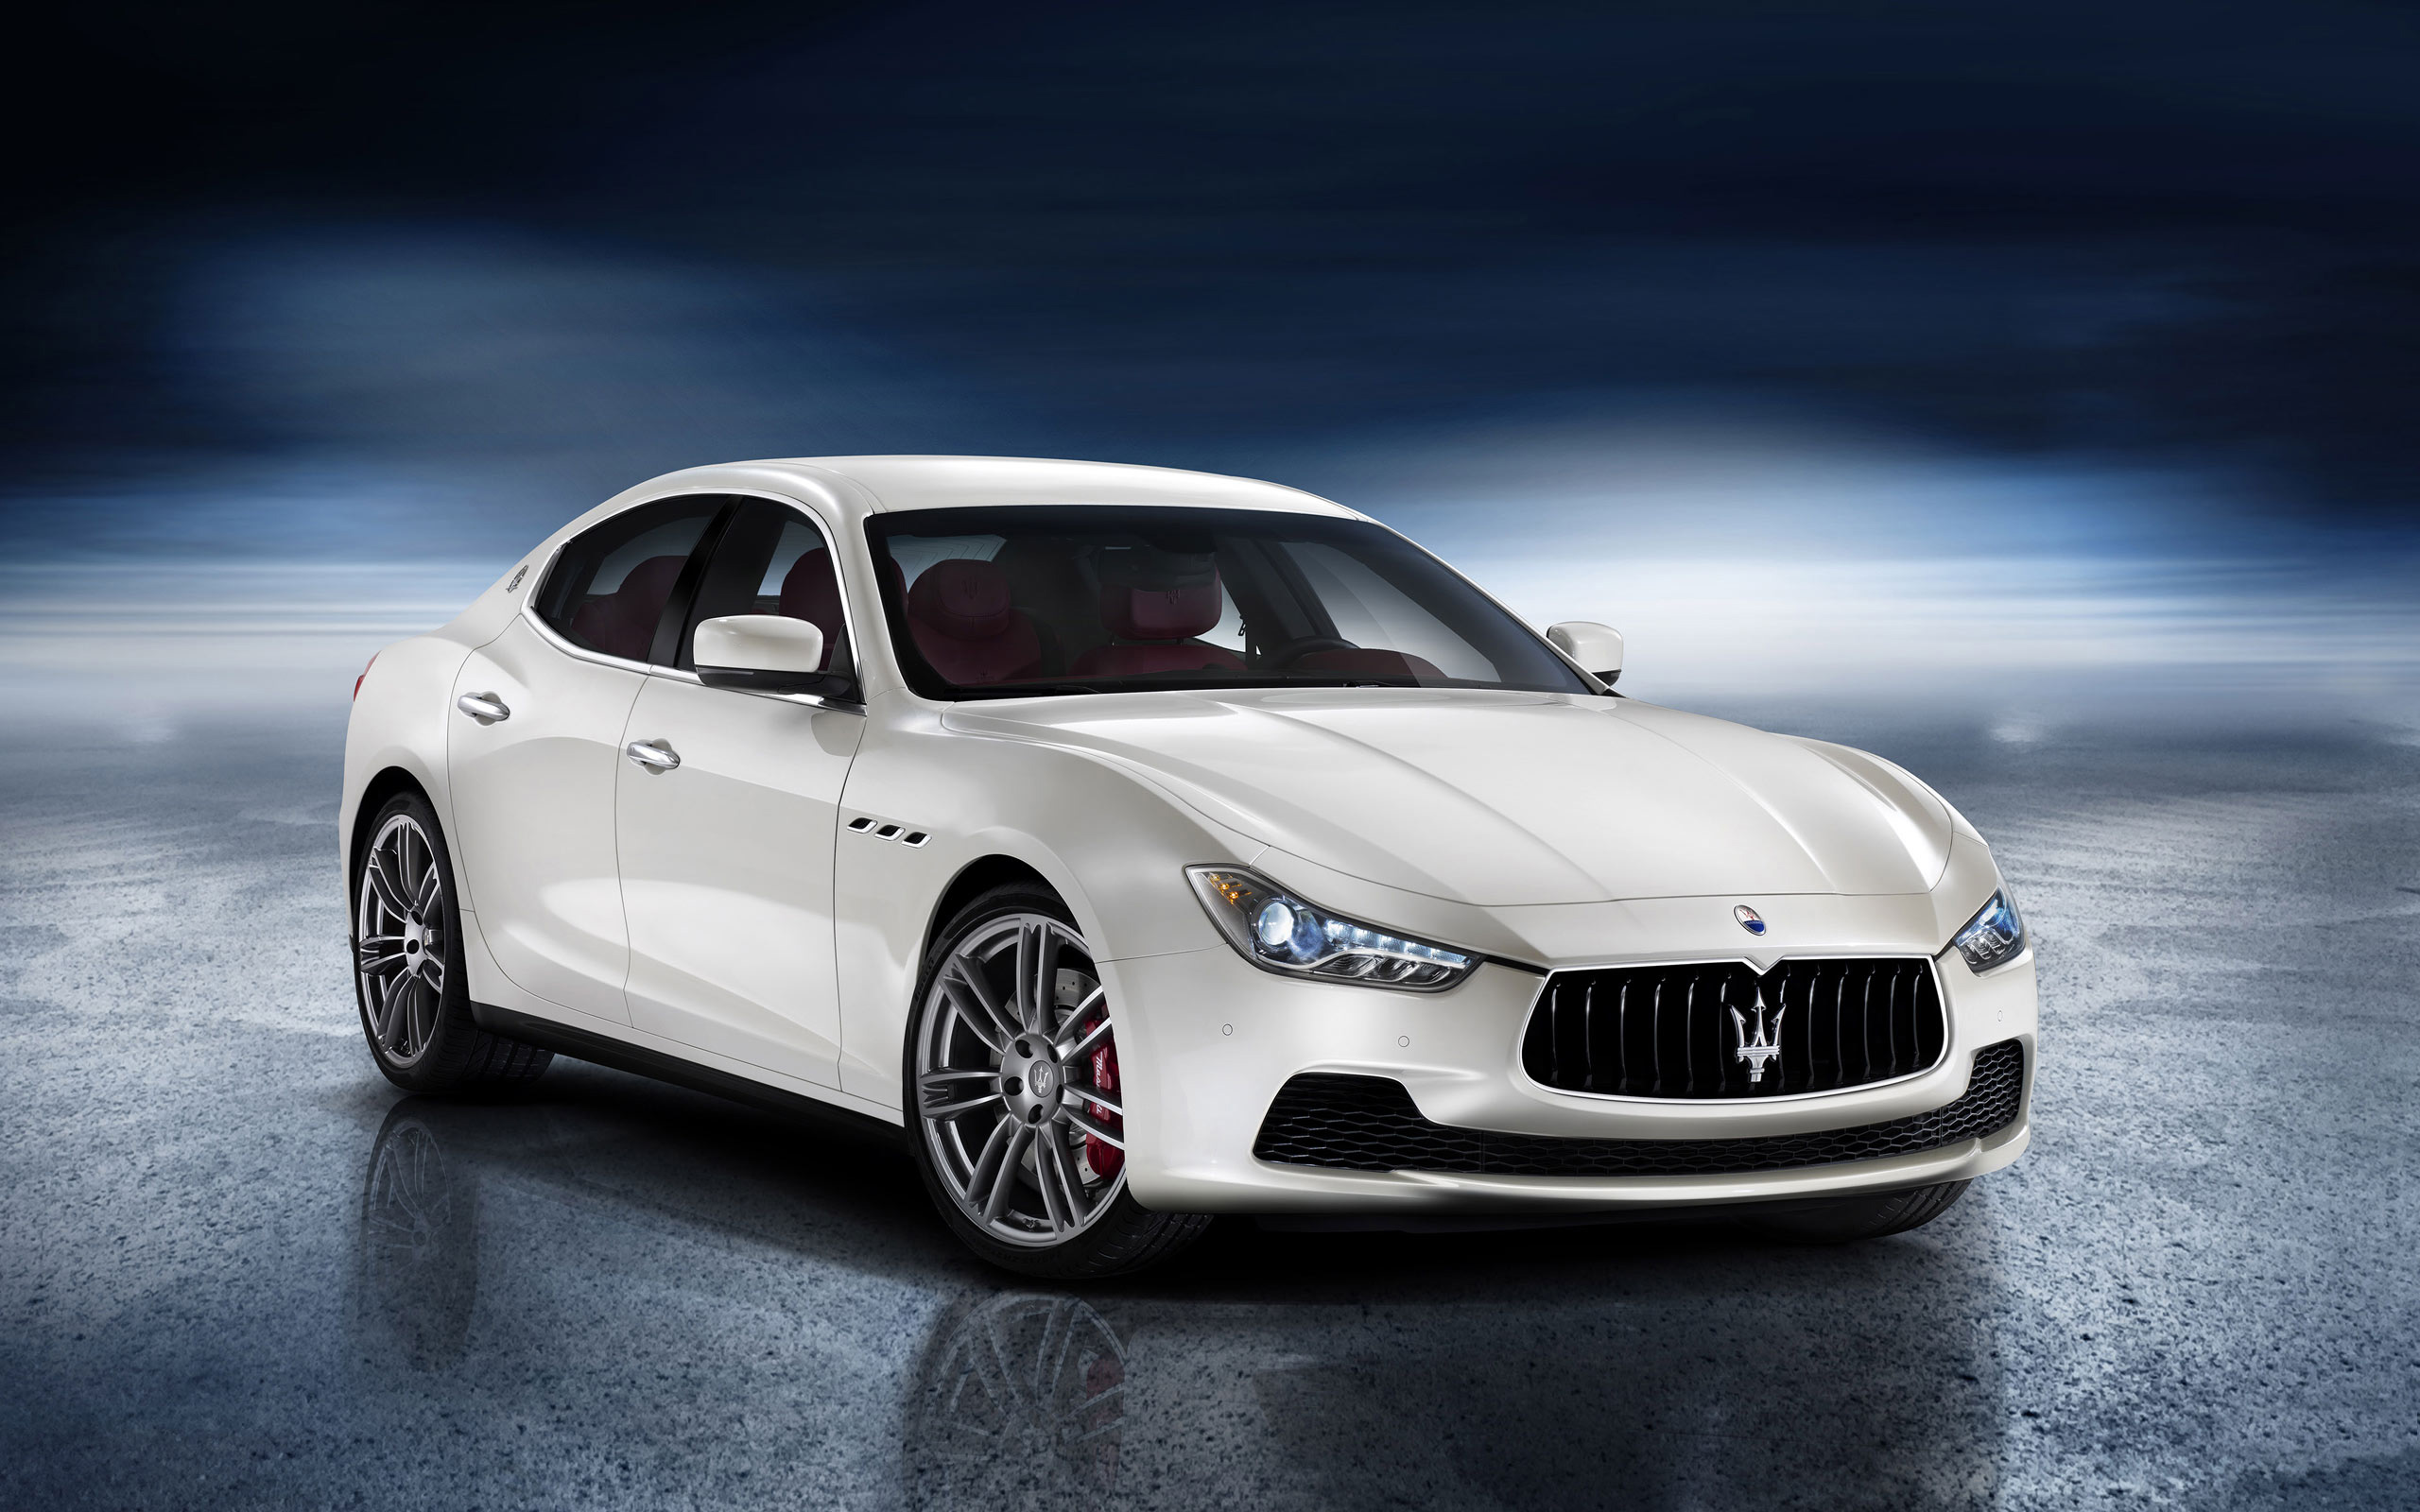 2014 Maserati Ghibli Wallpaper | HD Car Wallpapers